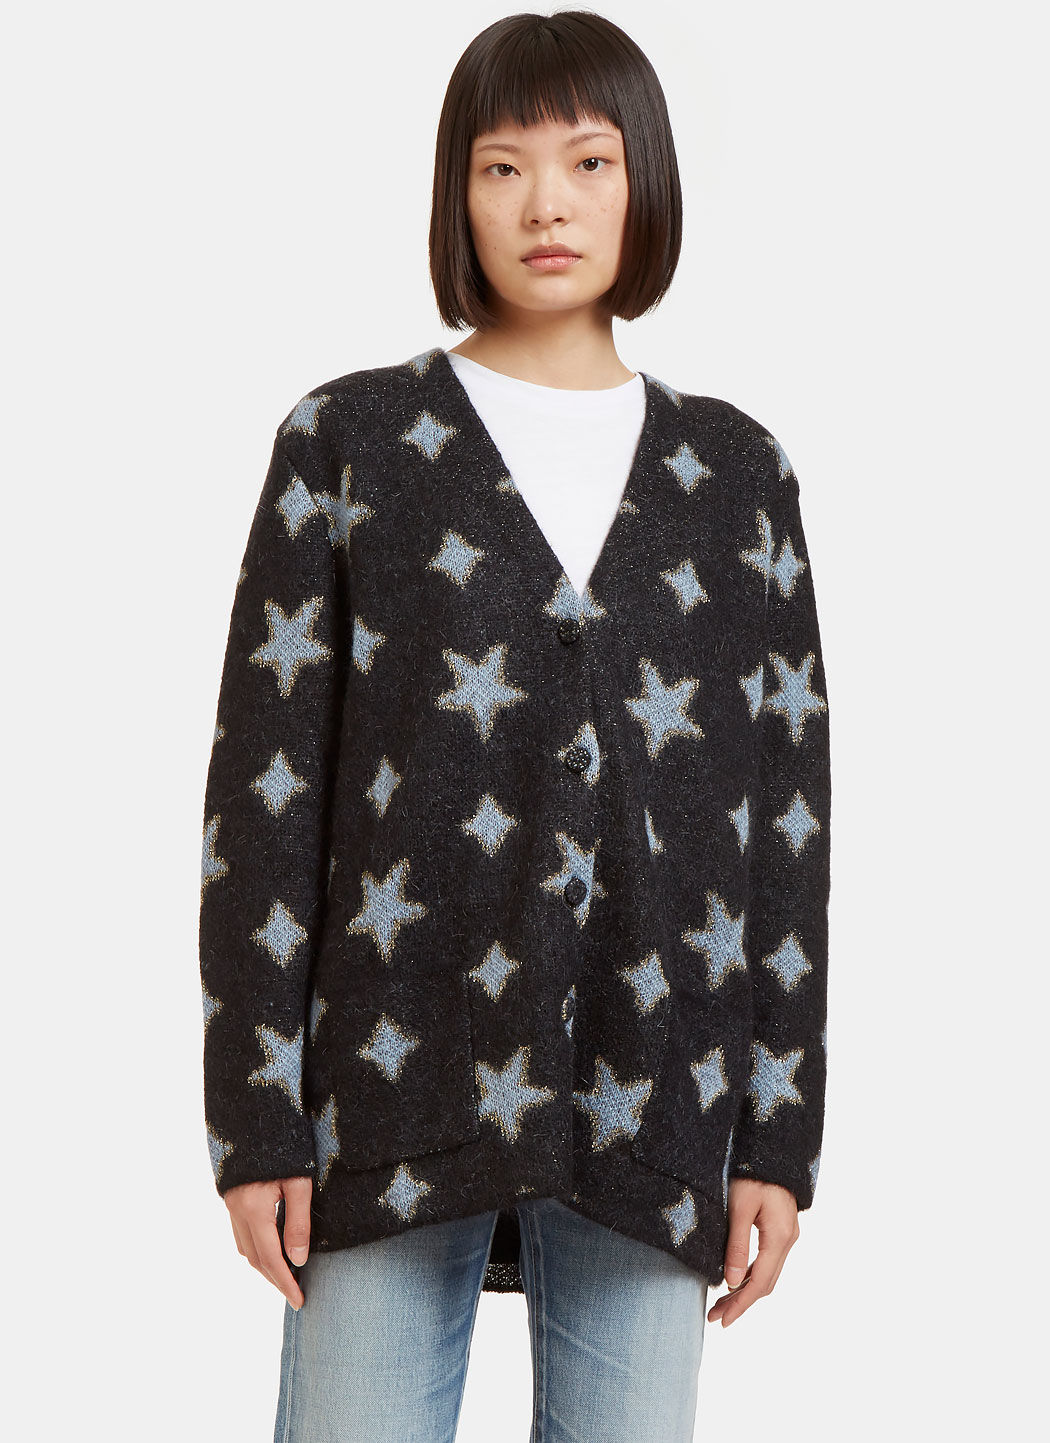 SAINT LAURENT Oversized Cardigan In Black, Sky Blue And Gold Star ...